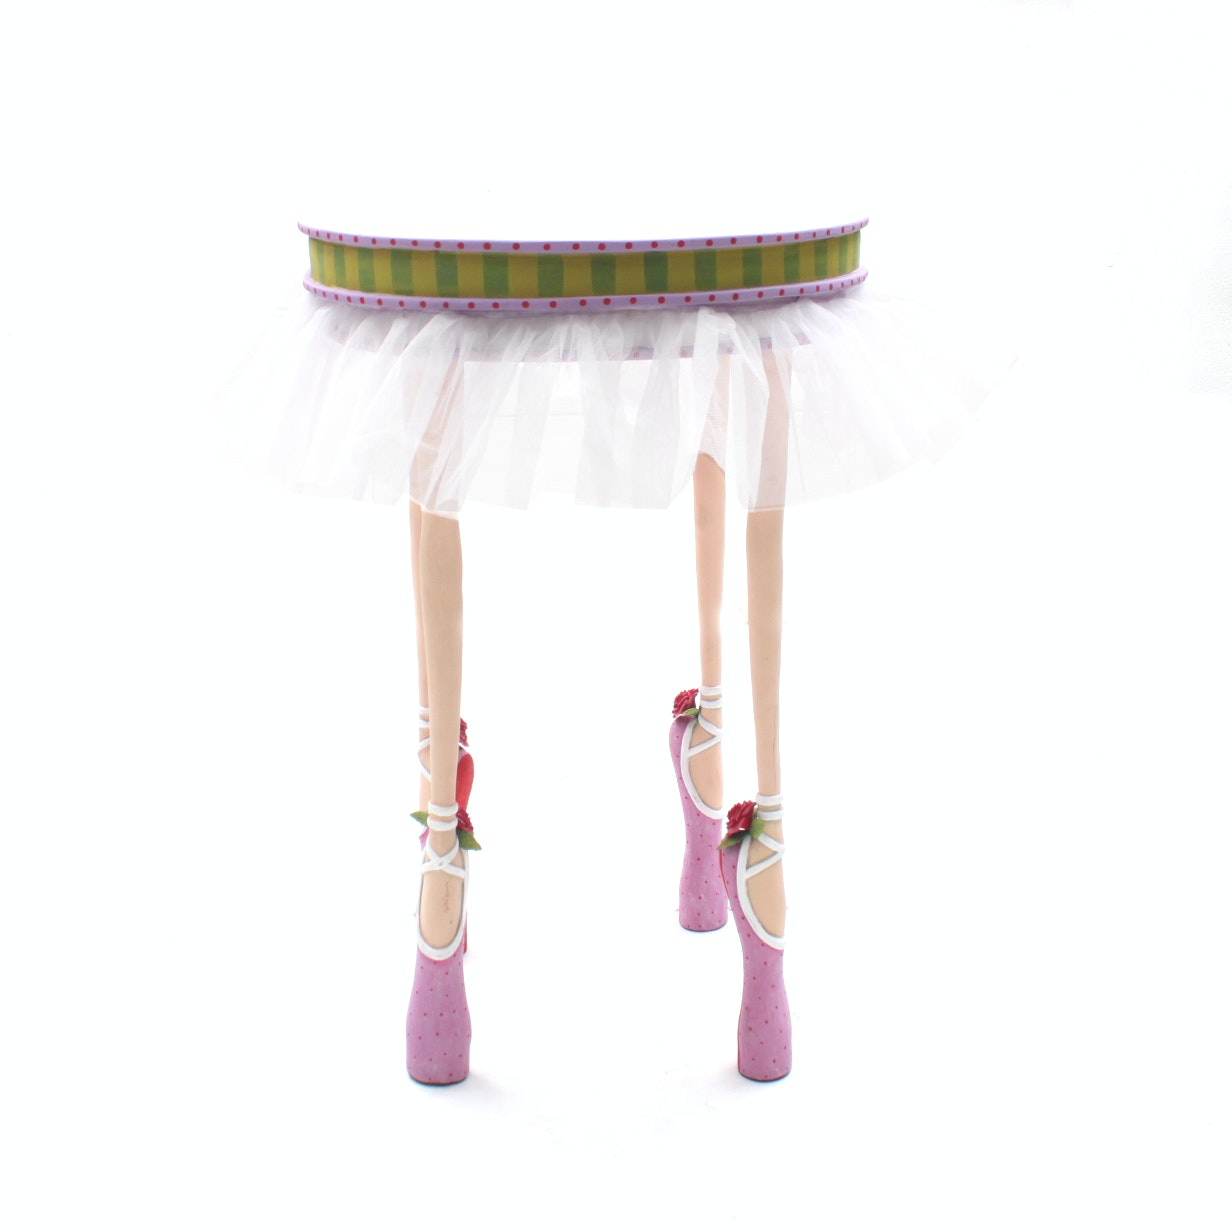 Decorative Ballerina Themed Side Table by Patience Brewster